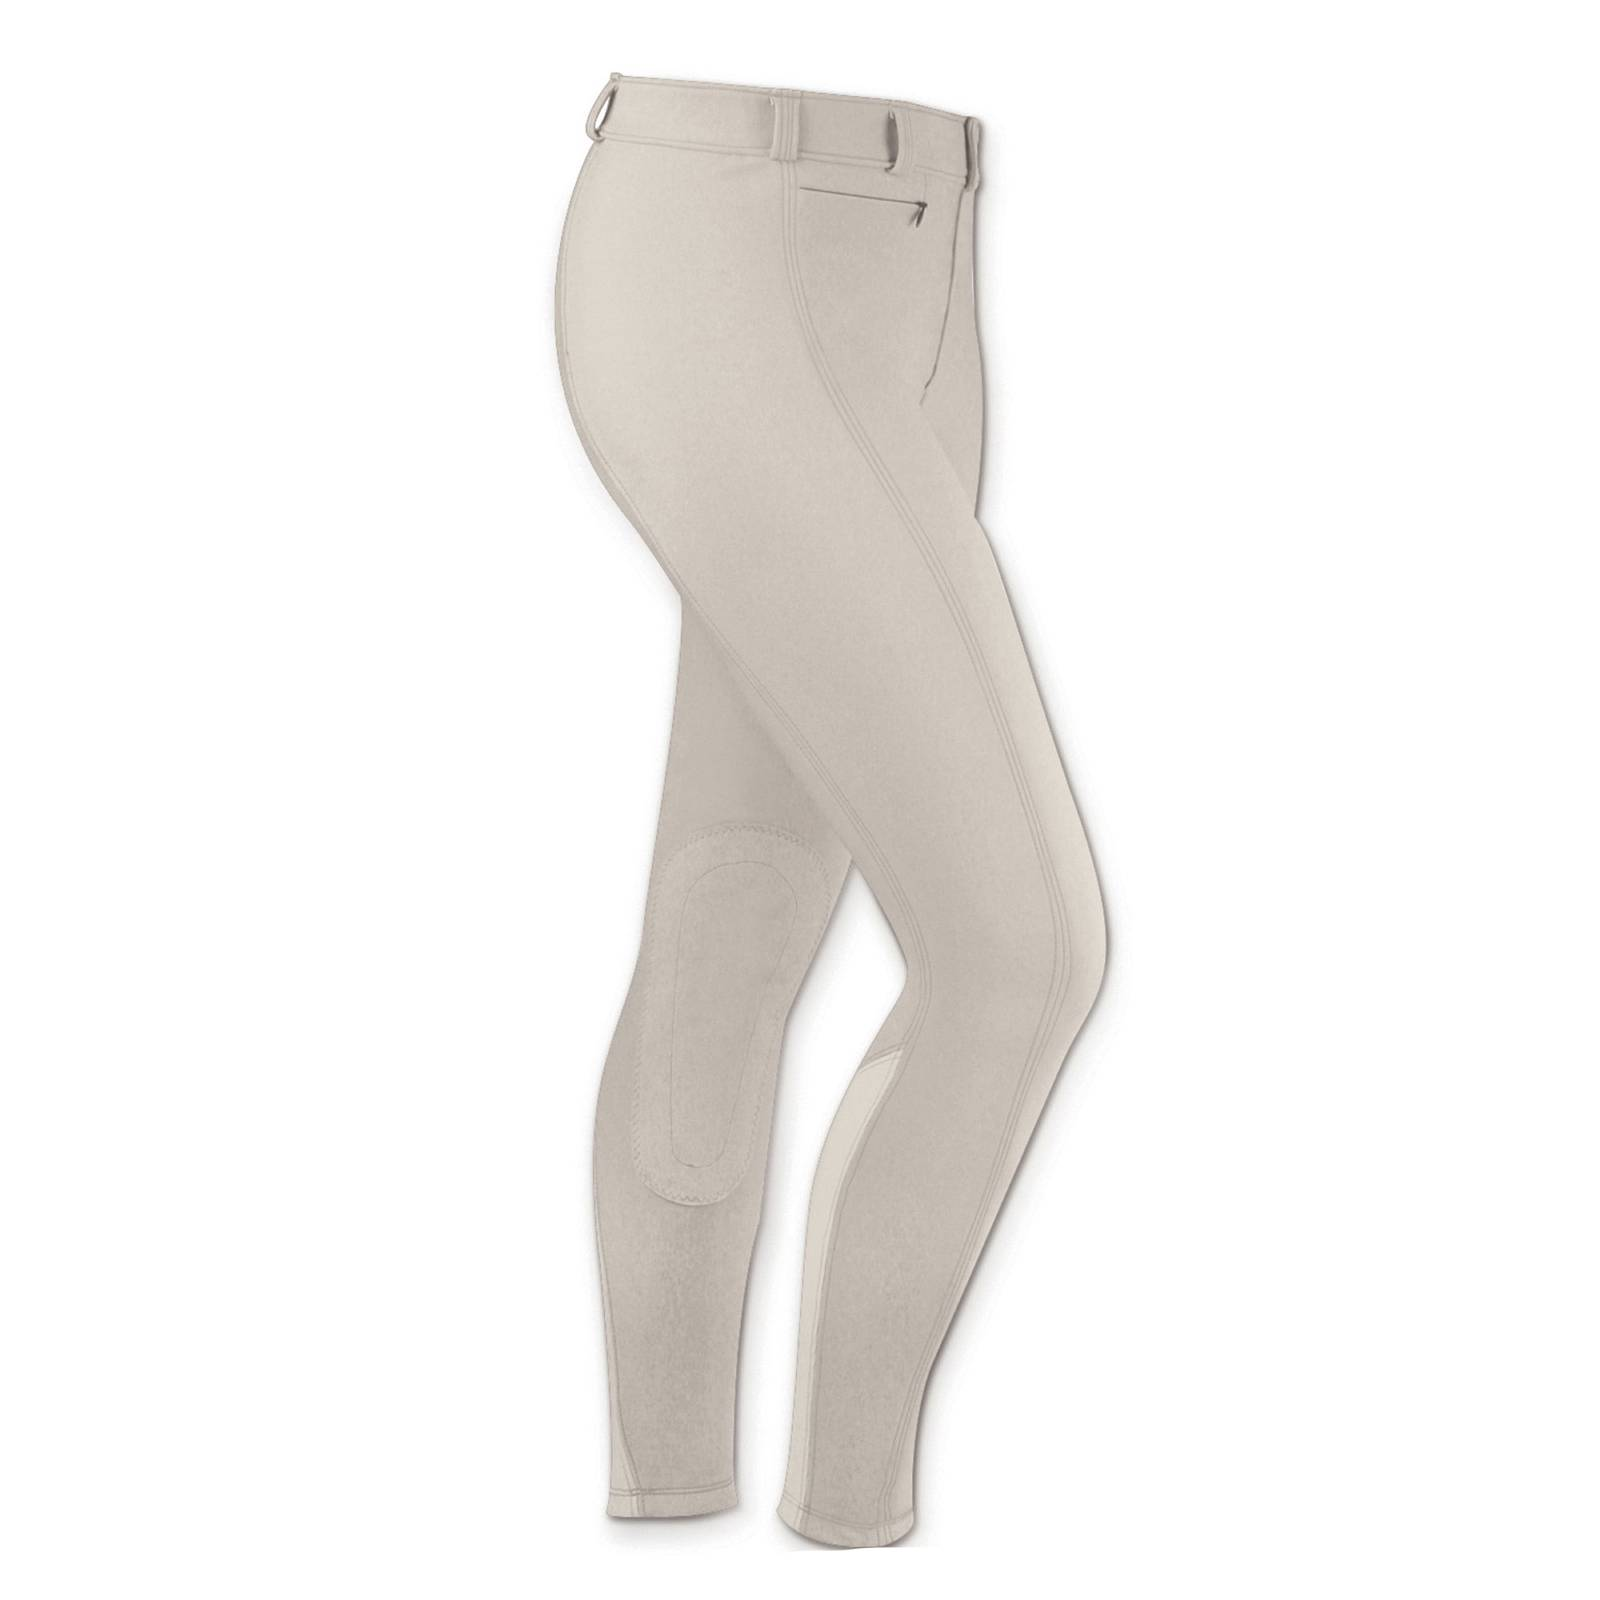 Irideon Ladies' Bellissima Breech